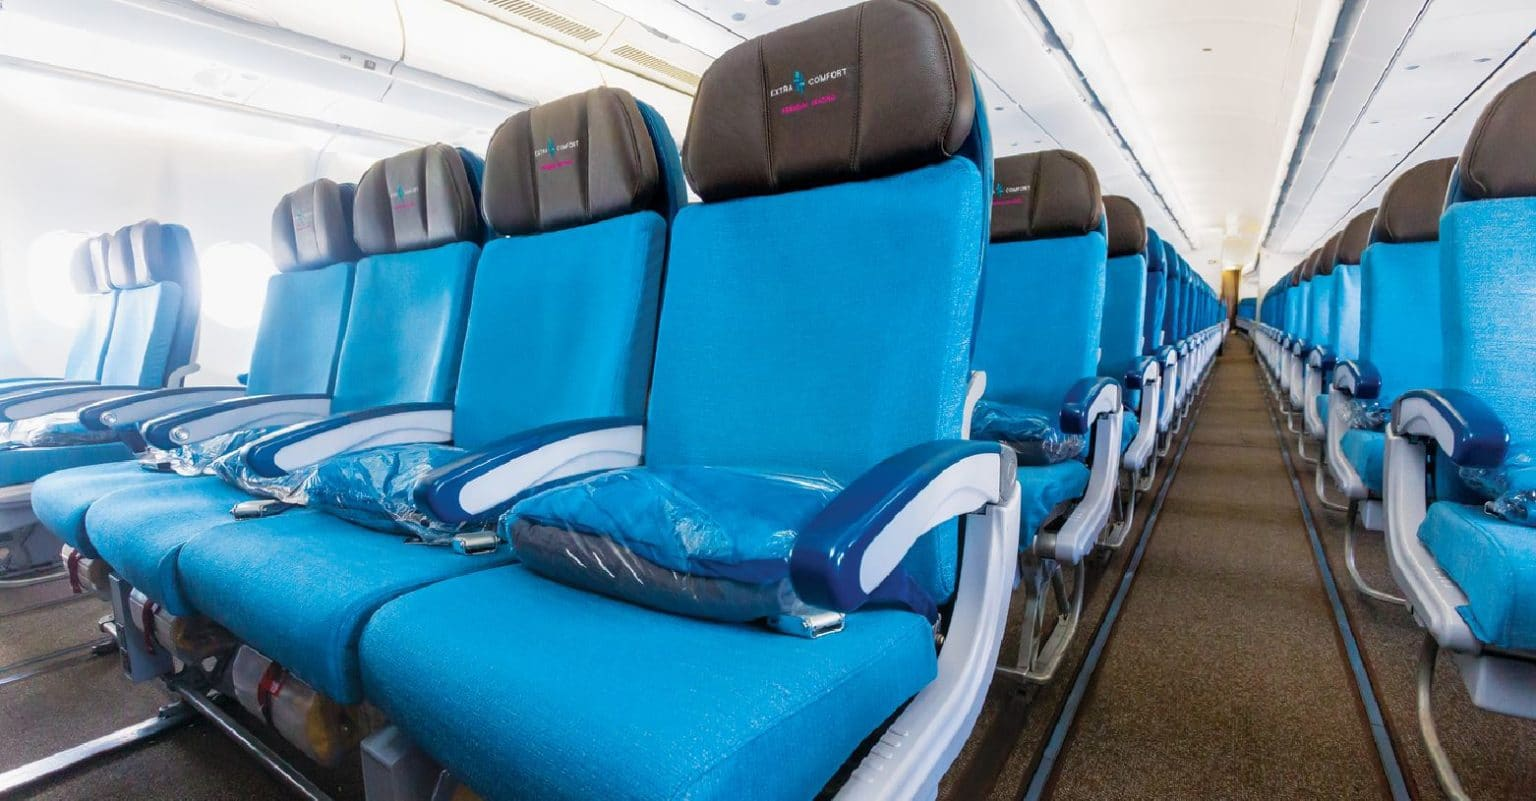 Hawaiian Airlines Carry-On Rules: Everything You Need to Know